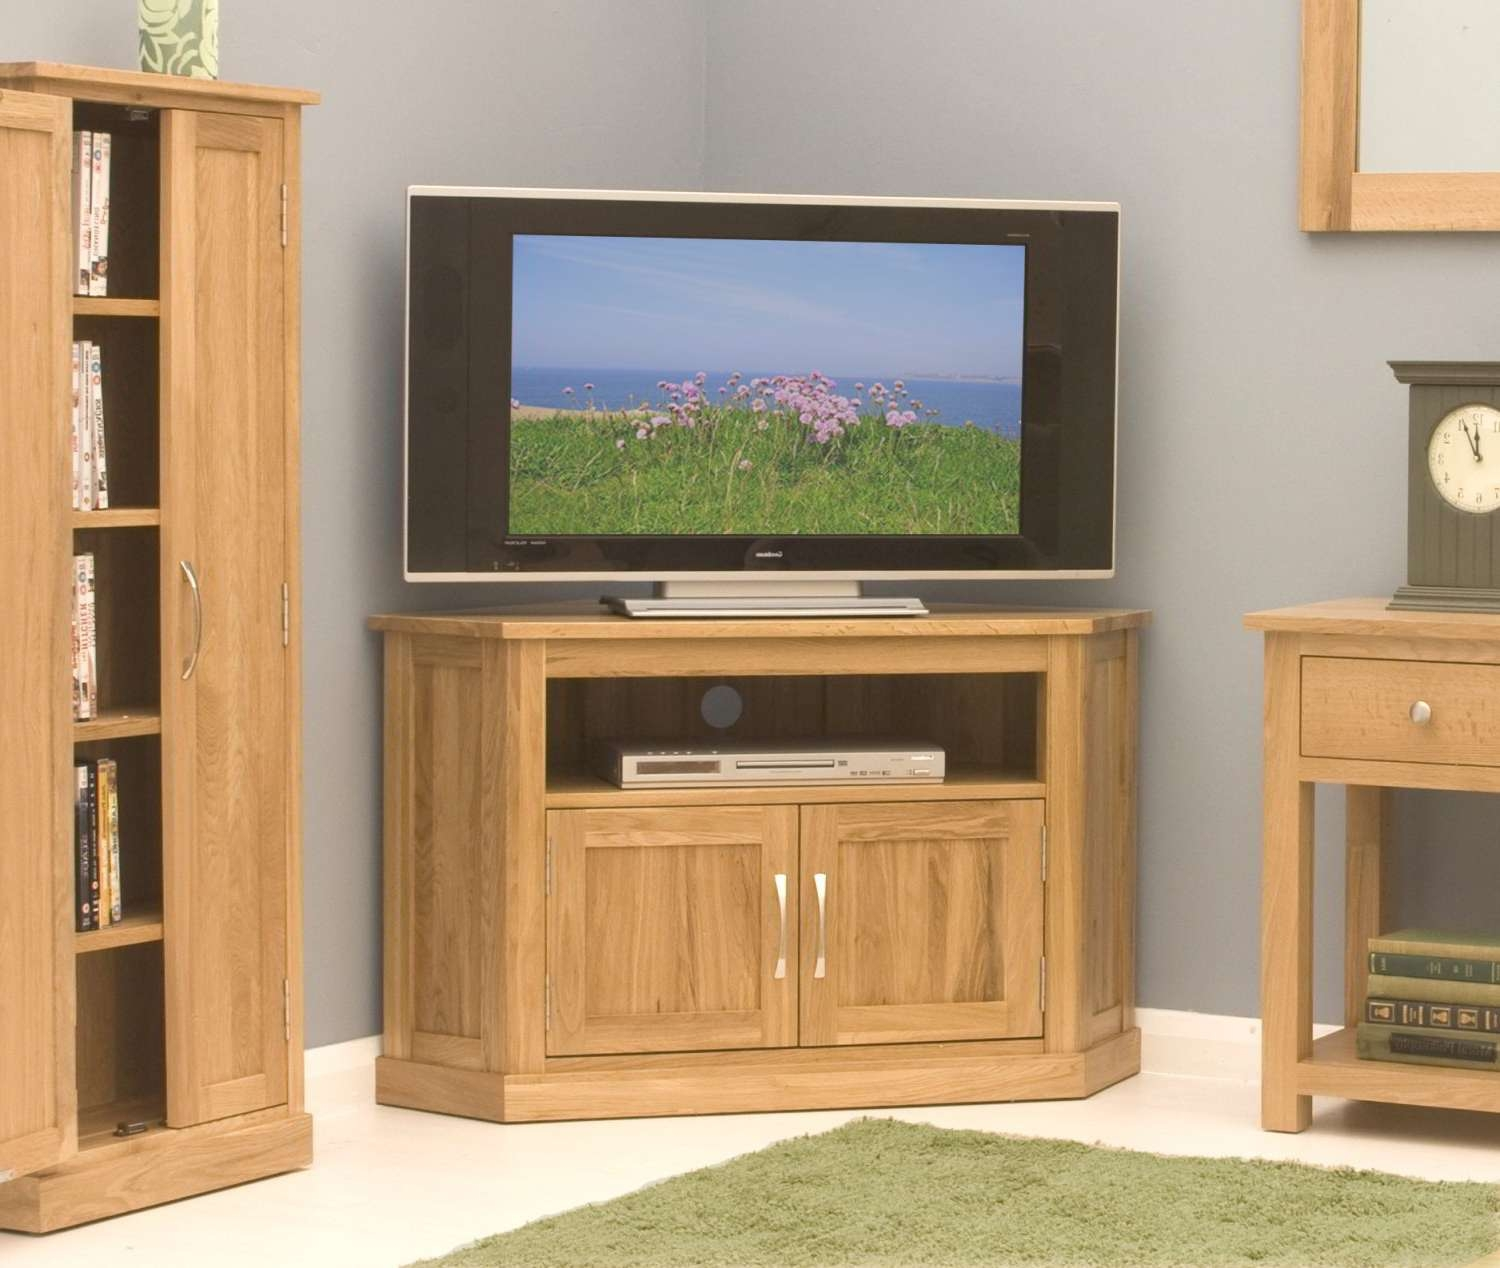 Conran Solid Oak Living Room Furniture Corner Television Cabinet Regarding Light Oak Corner Tv Stands (View 16 of 20)